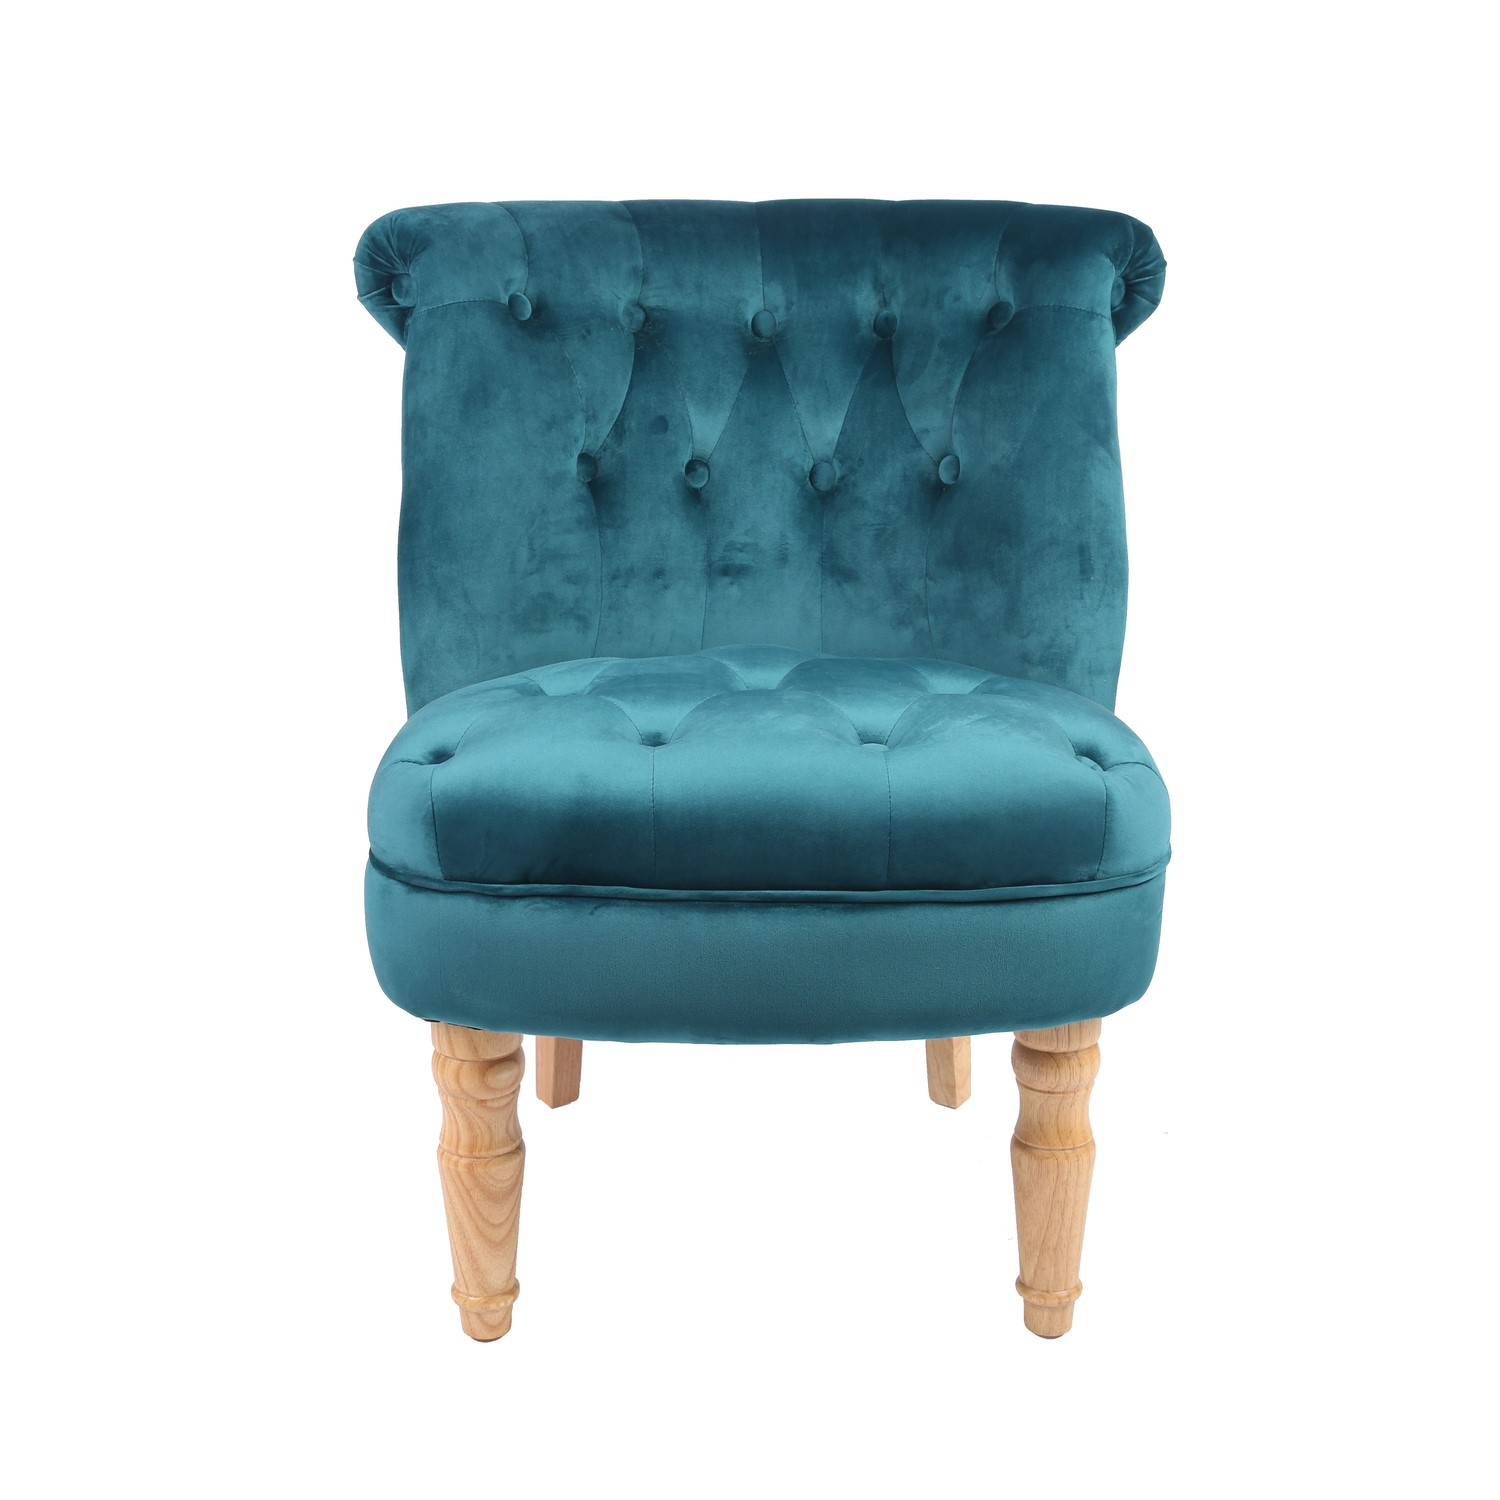 LPD Charlotte Occassional Accent Chair in Teal